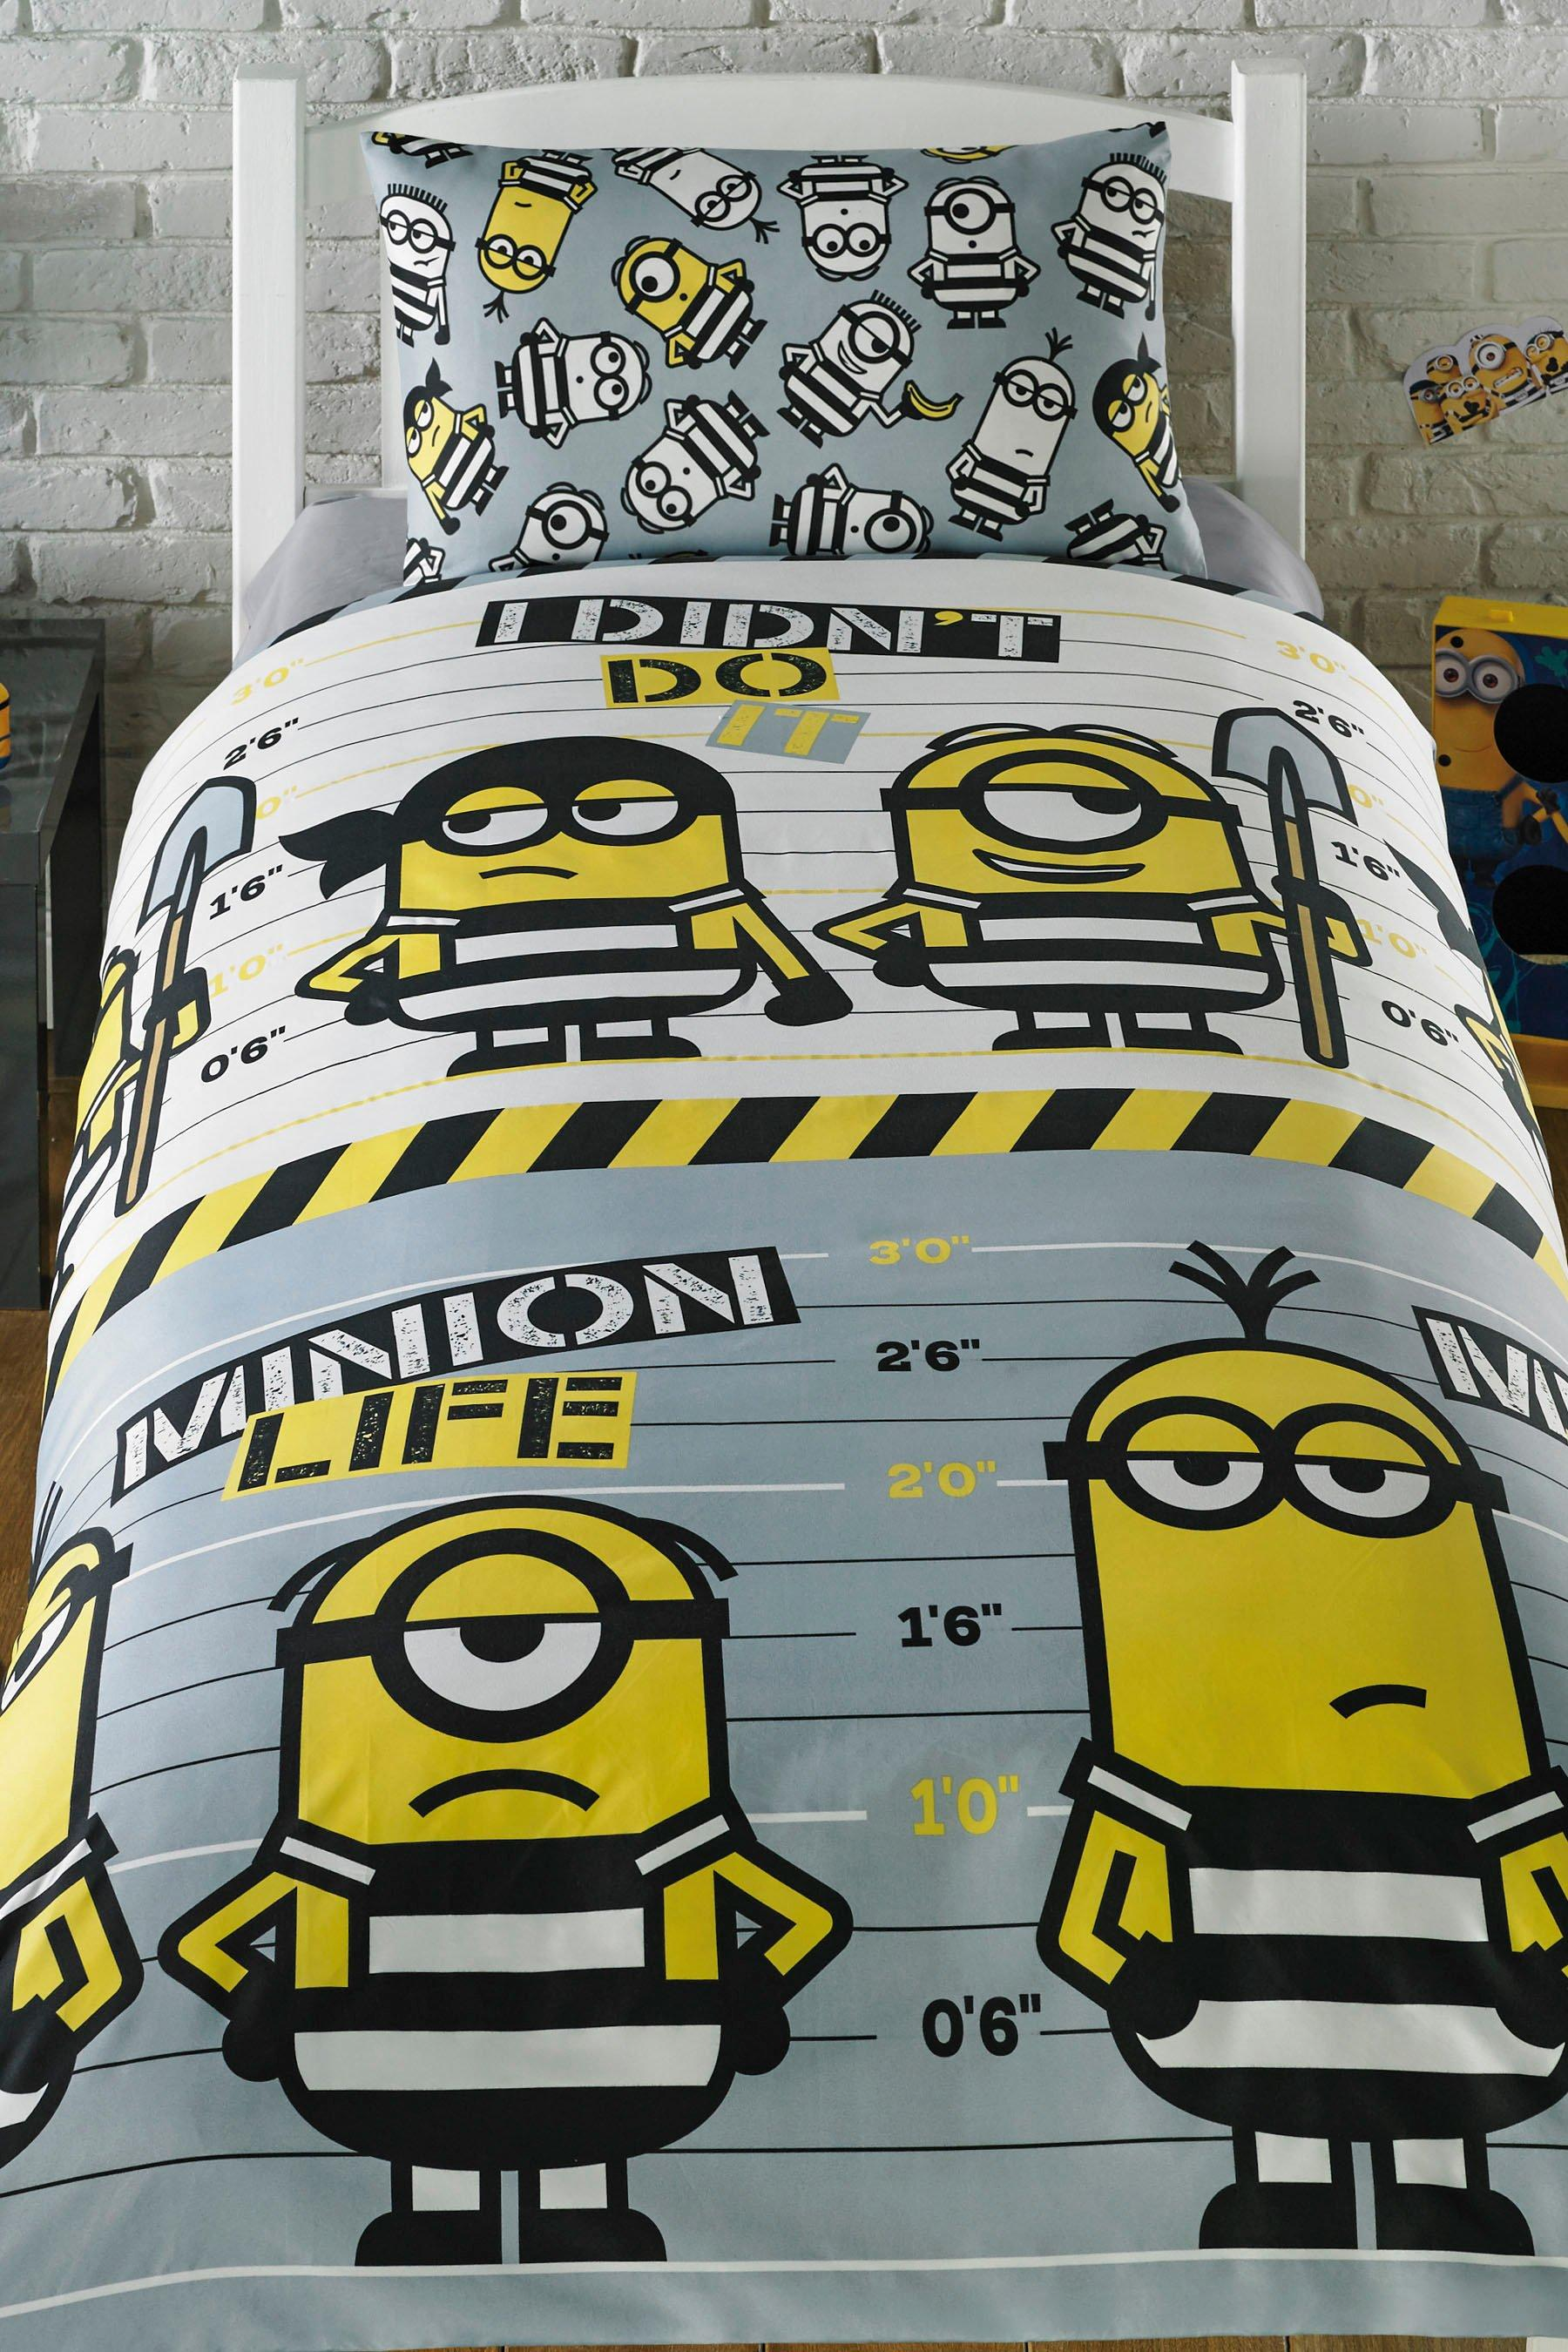 DESPICABLE ME MINIONS 66 x 72 BEDROOM CURTAINS NEW Home ...